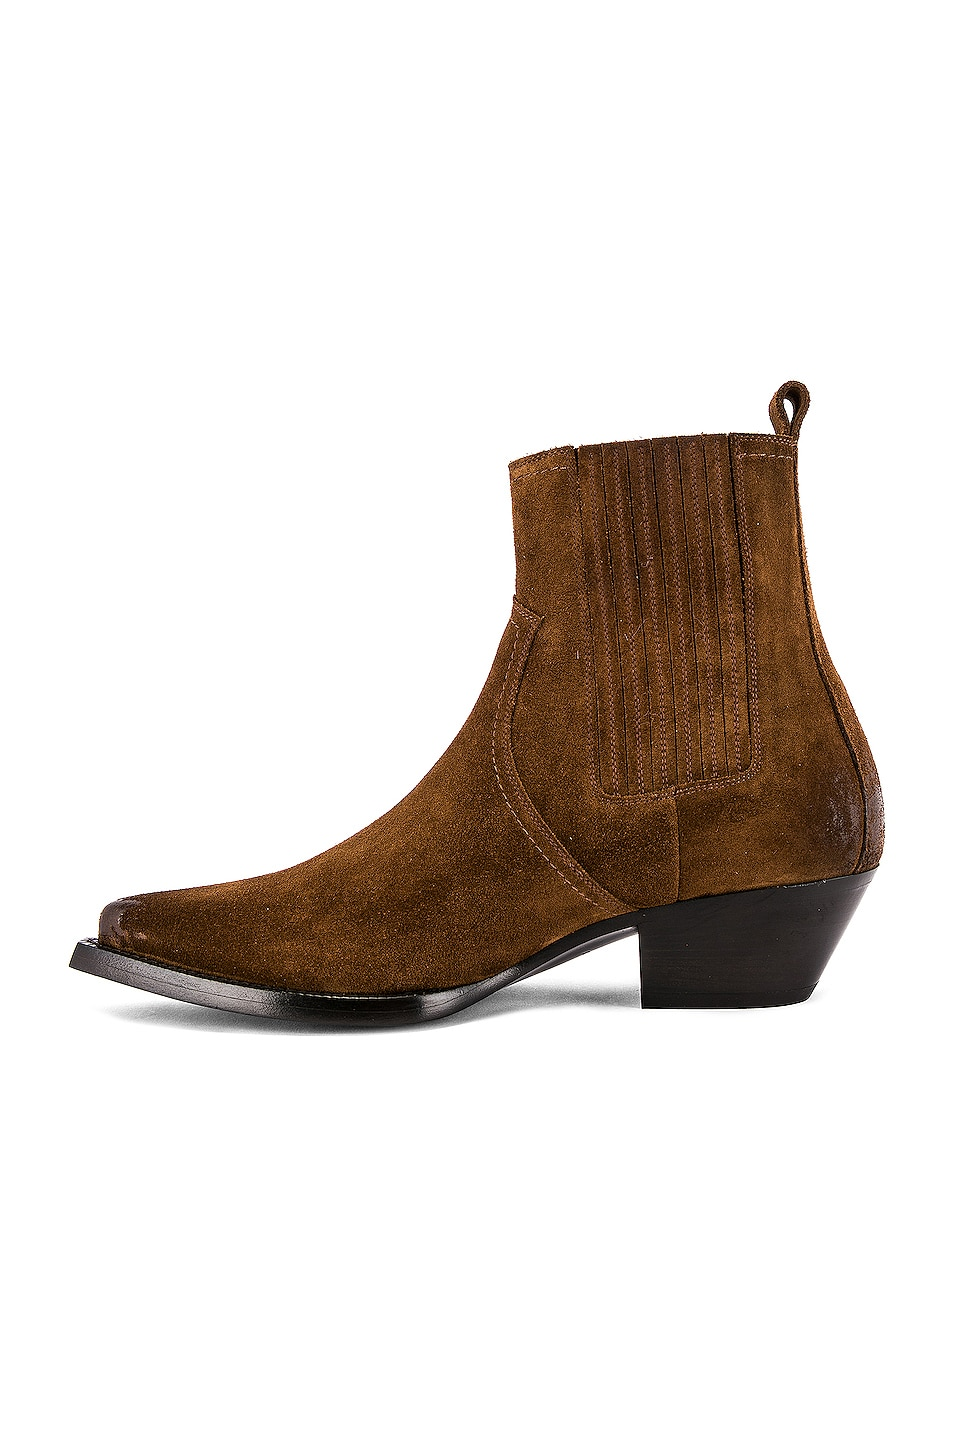 Image 5 of Saint Laurent Lukas Suede Boots in Land